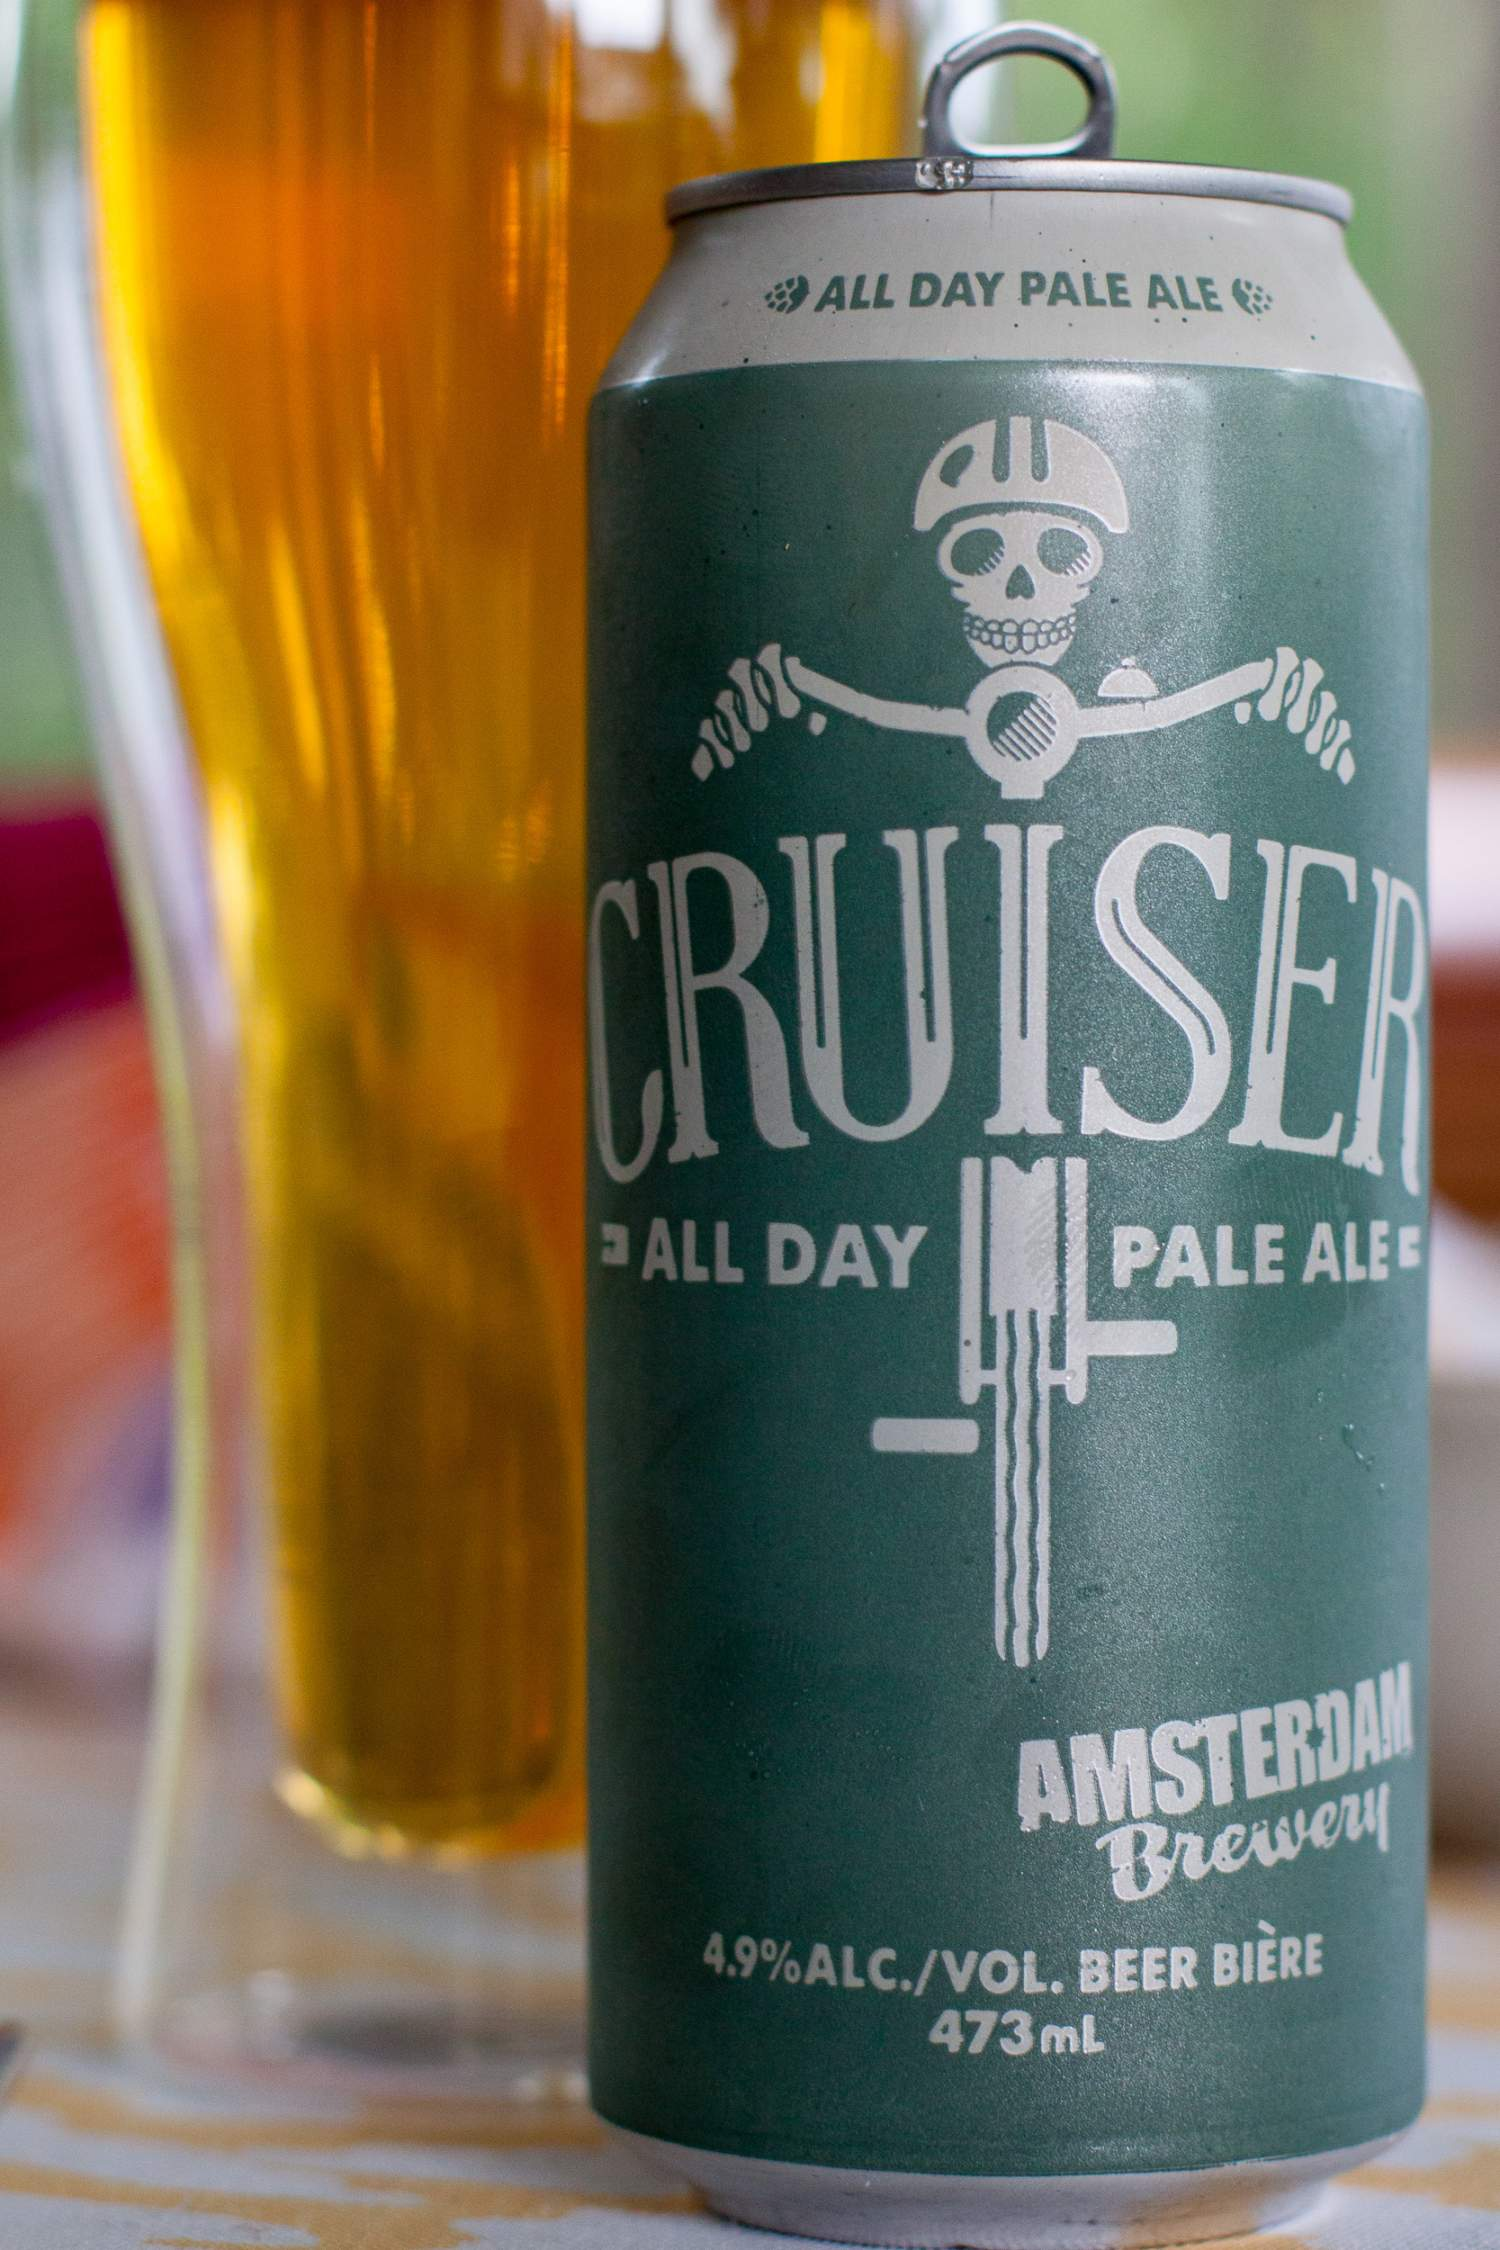 Pale ale from Amsterdam brewery, Toronto